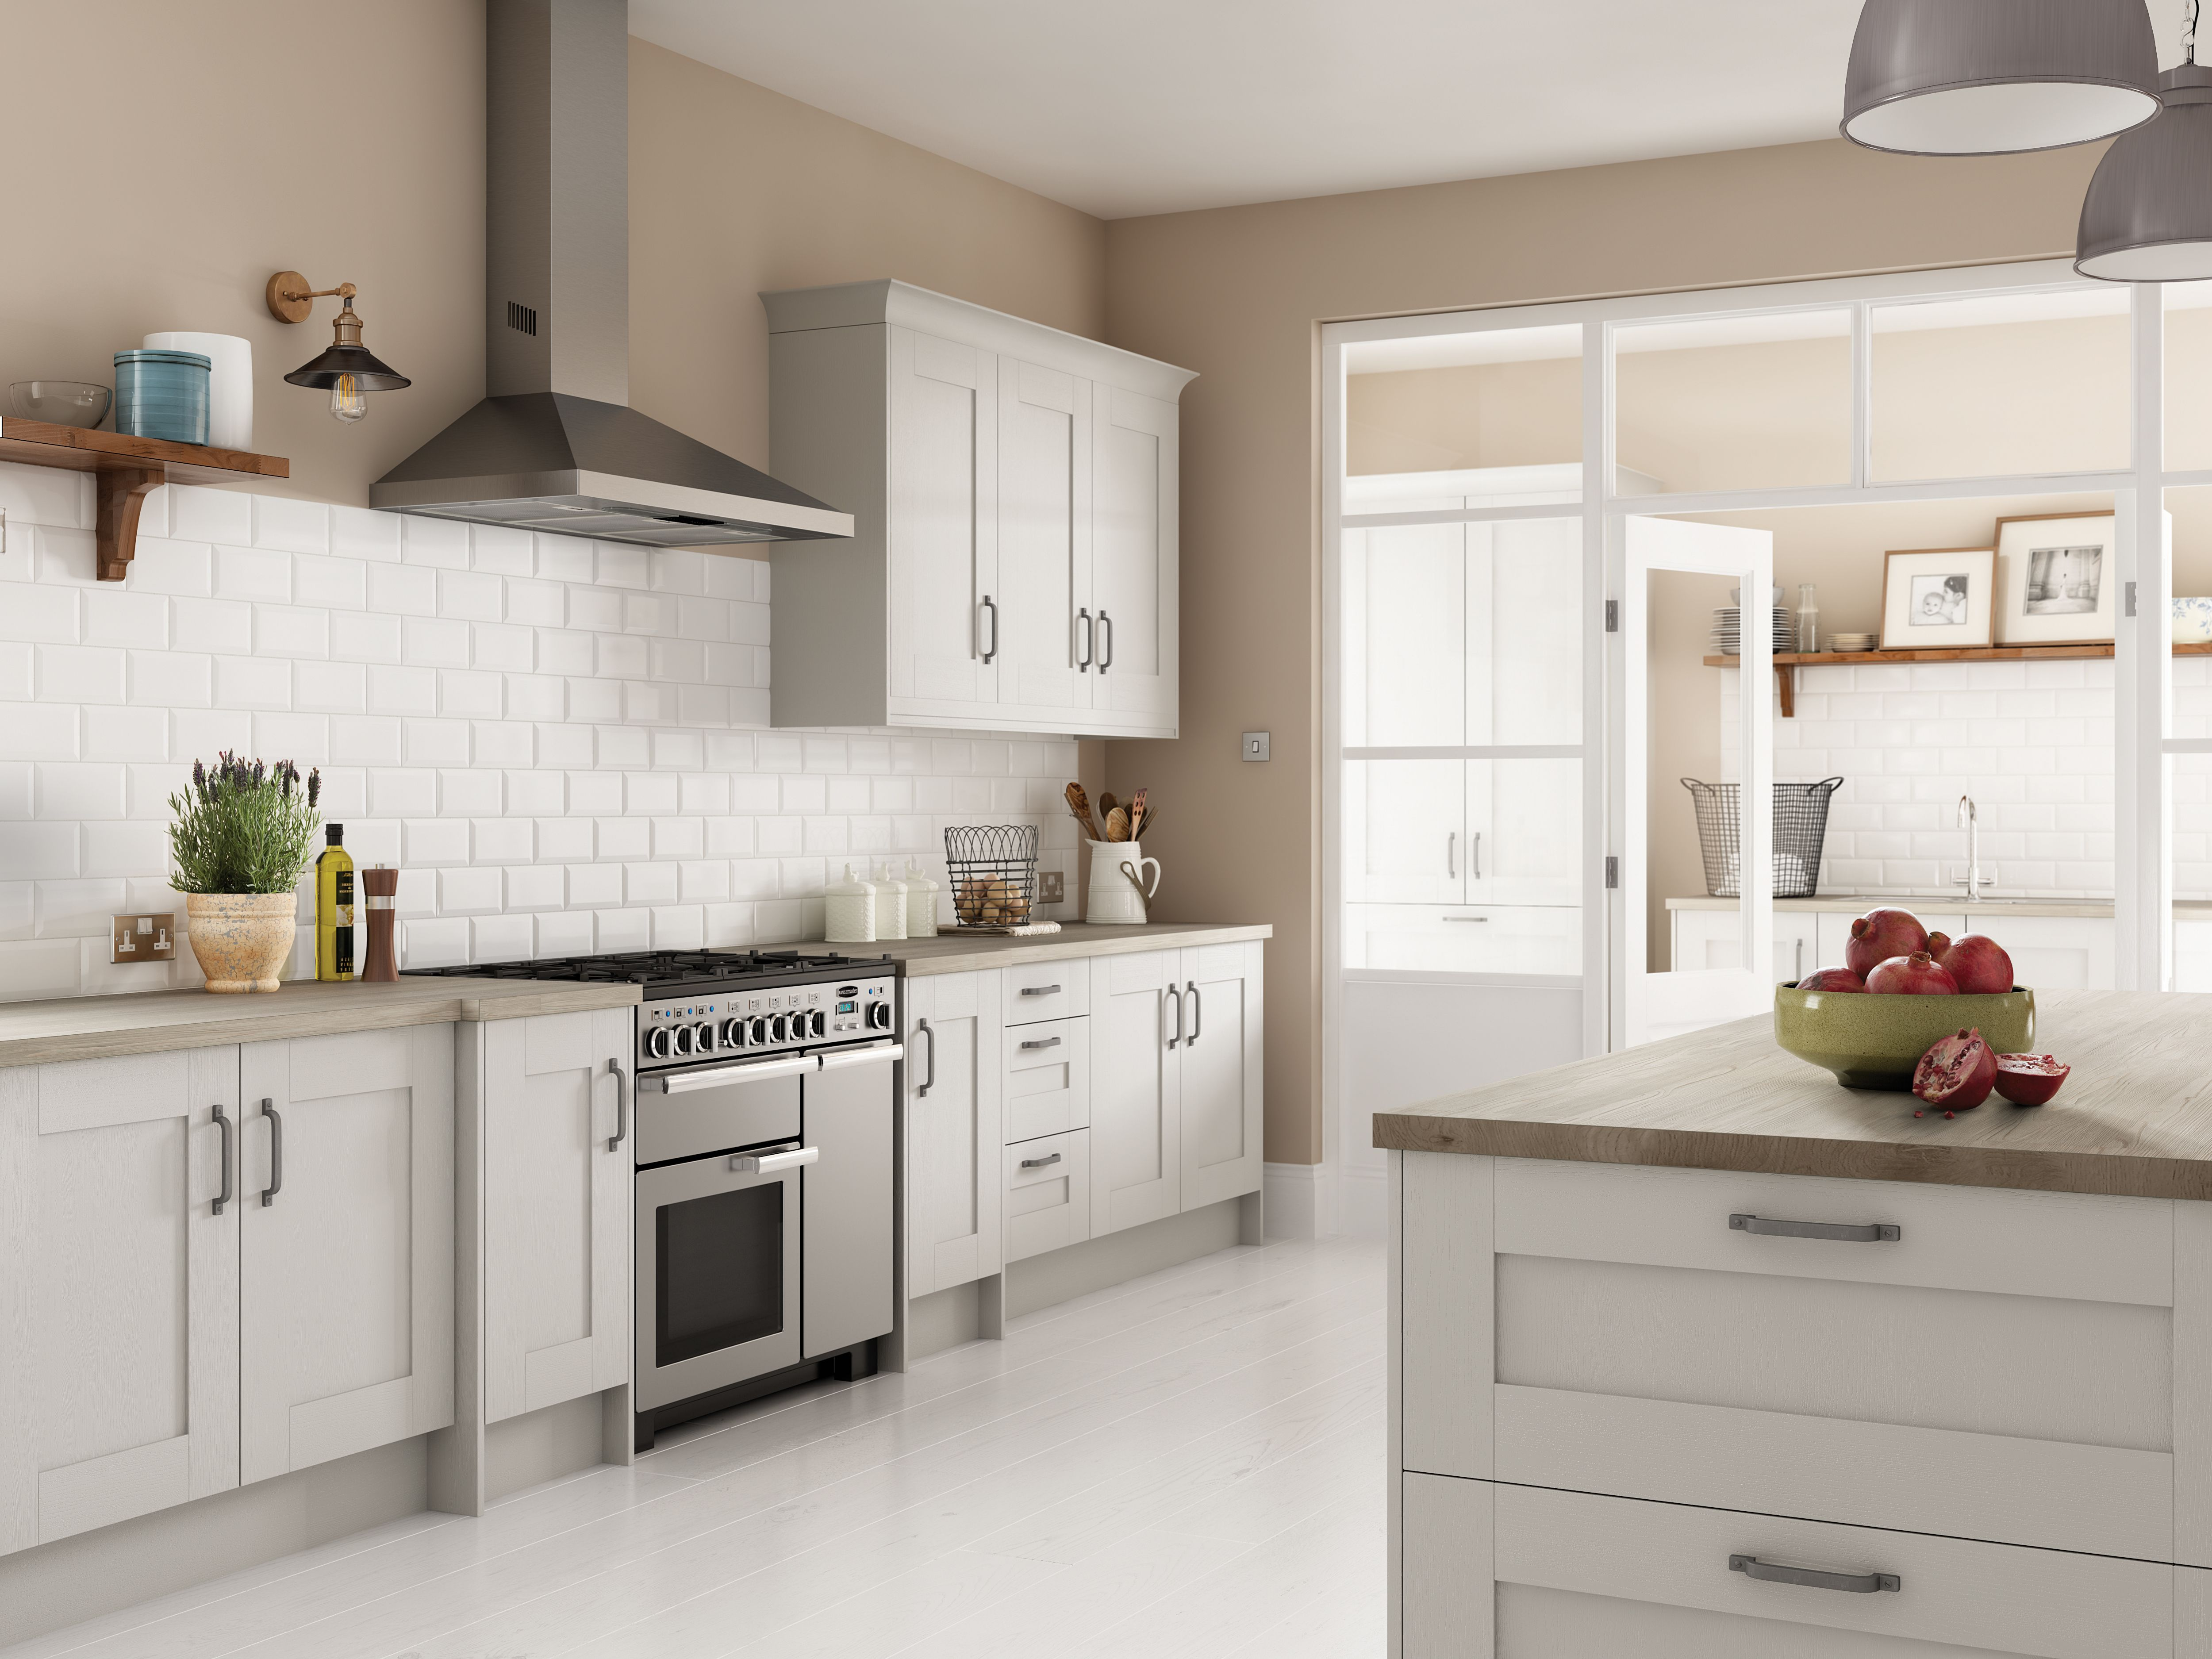 The Kensington kitchen in 'Haze'. This range is available